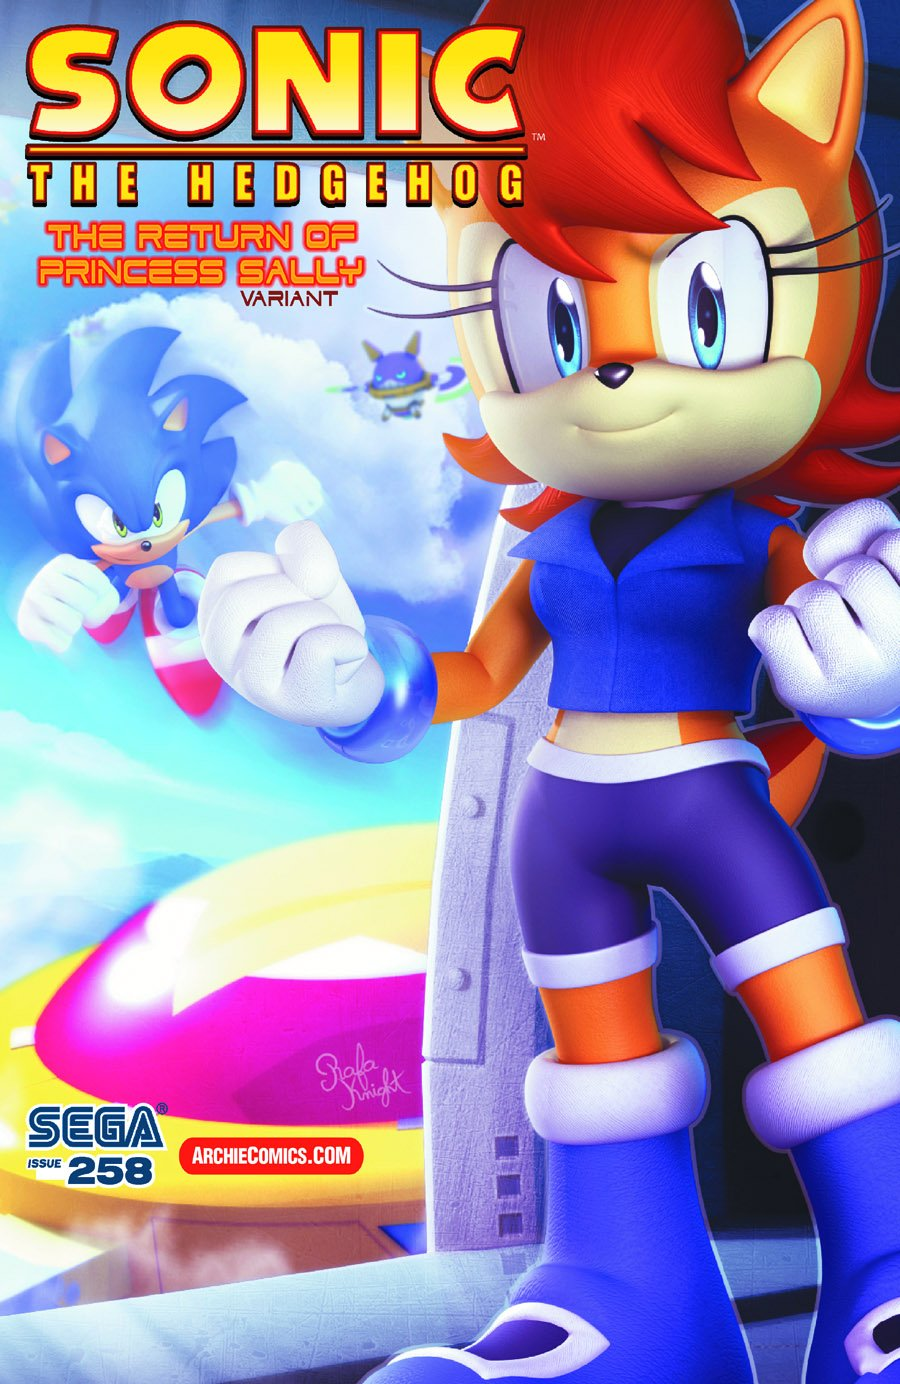 Sonic the Hedgehog 258 (May 2014) (variant edition)